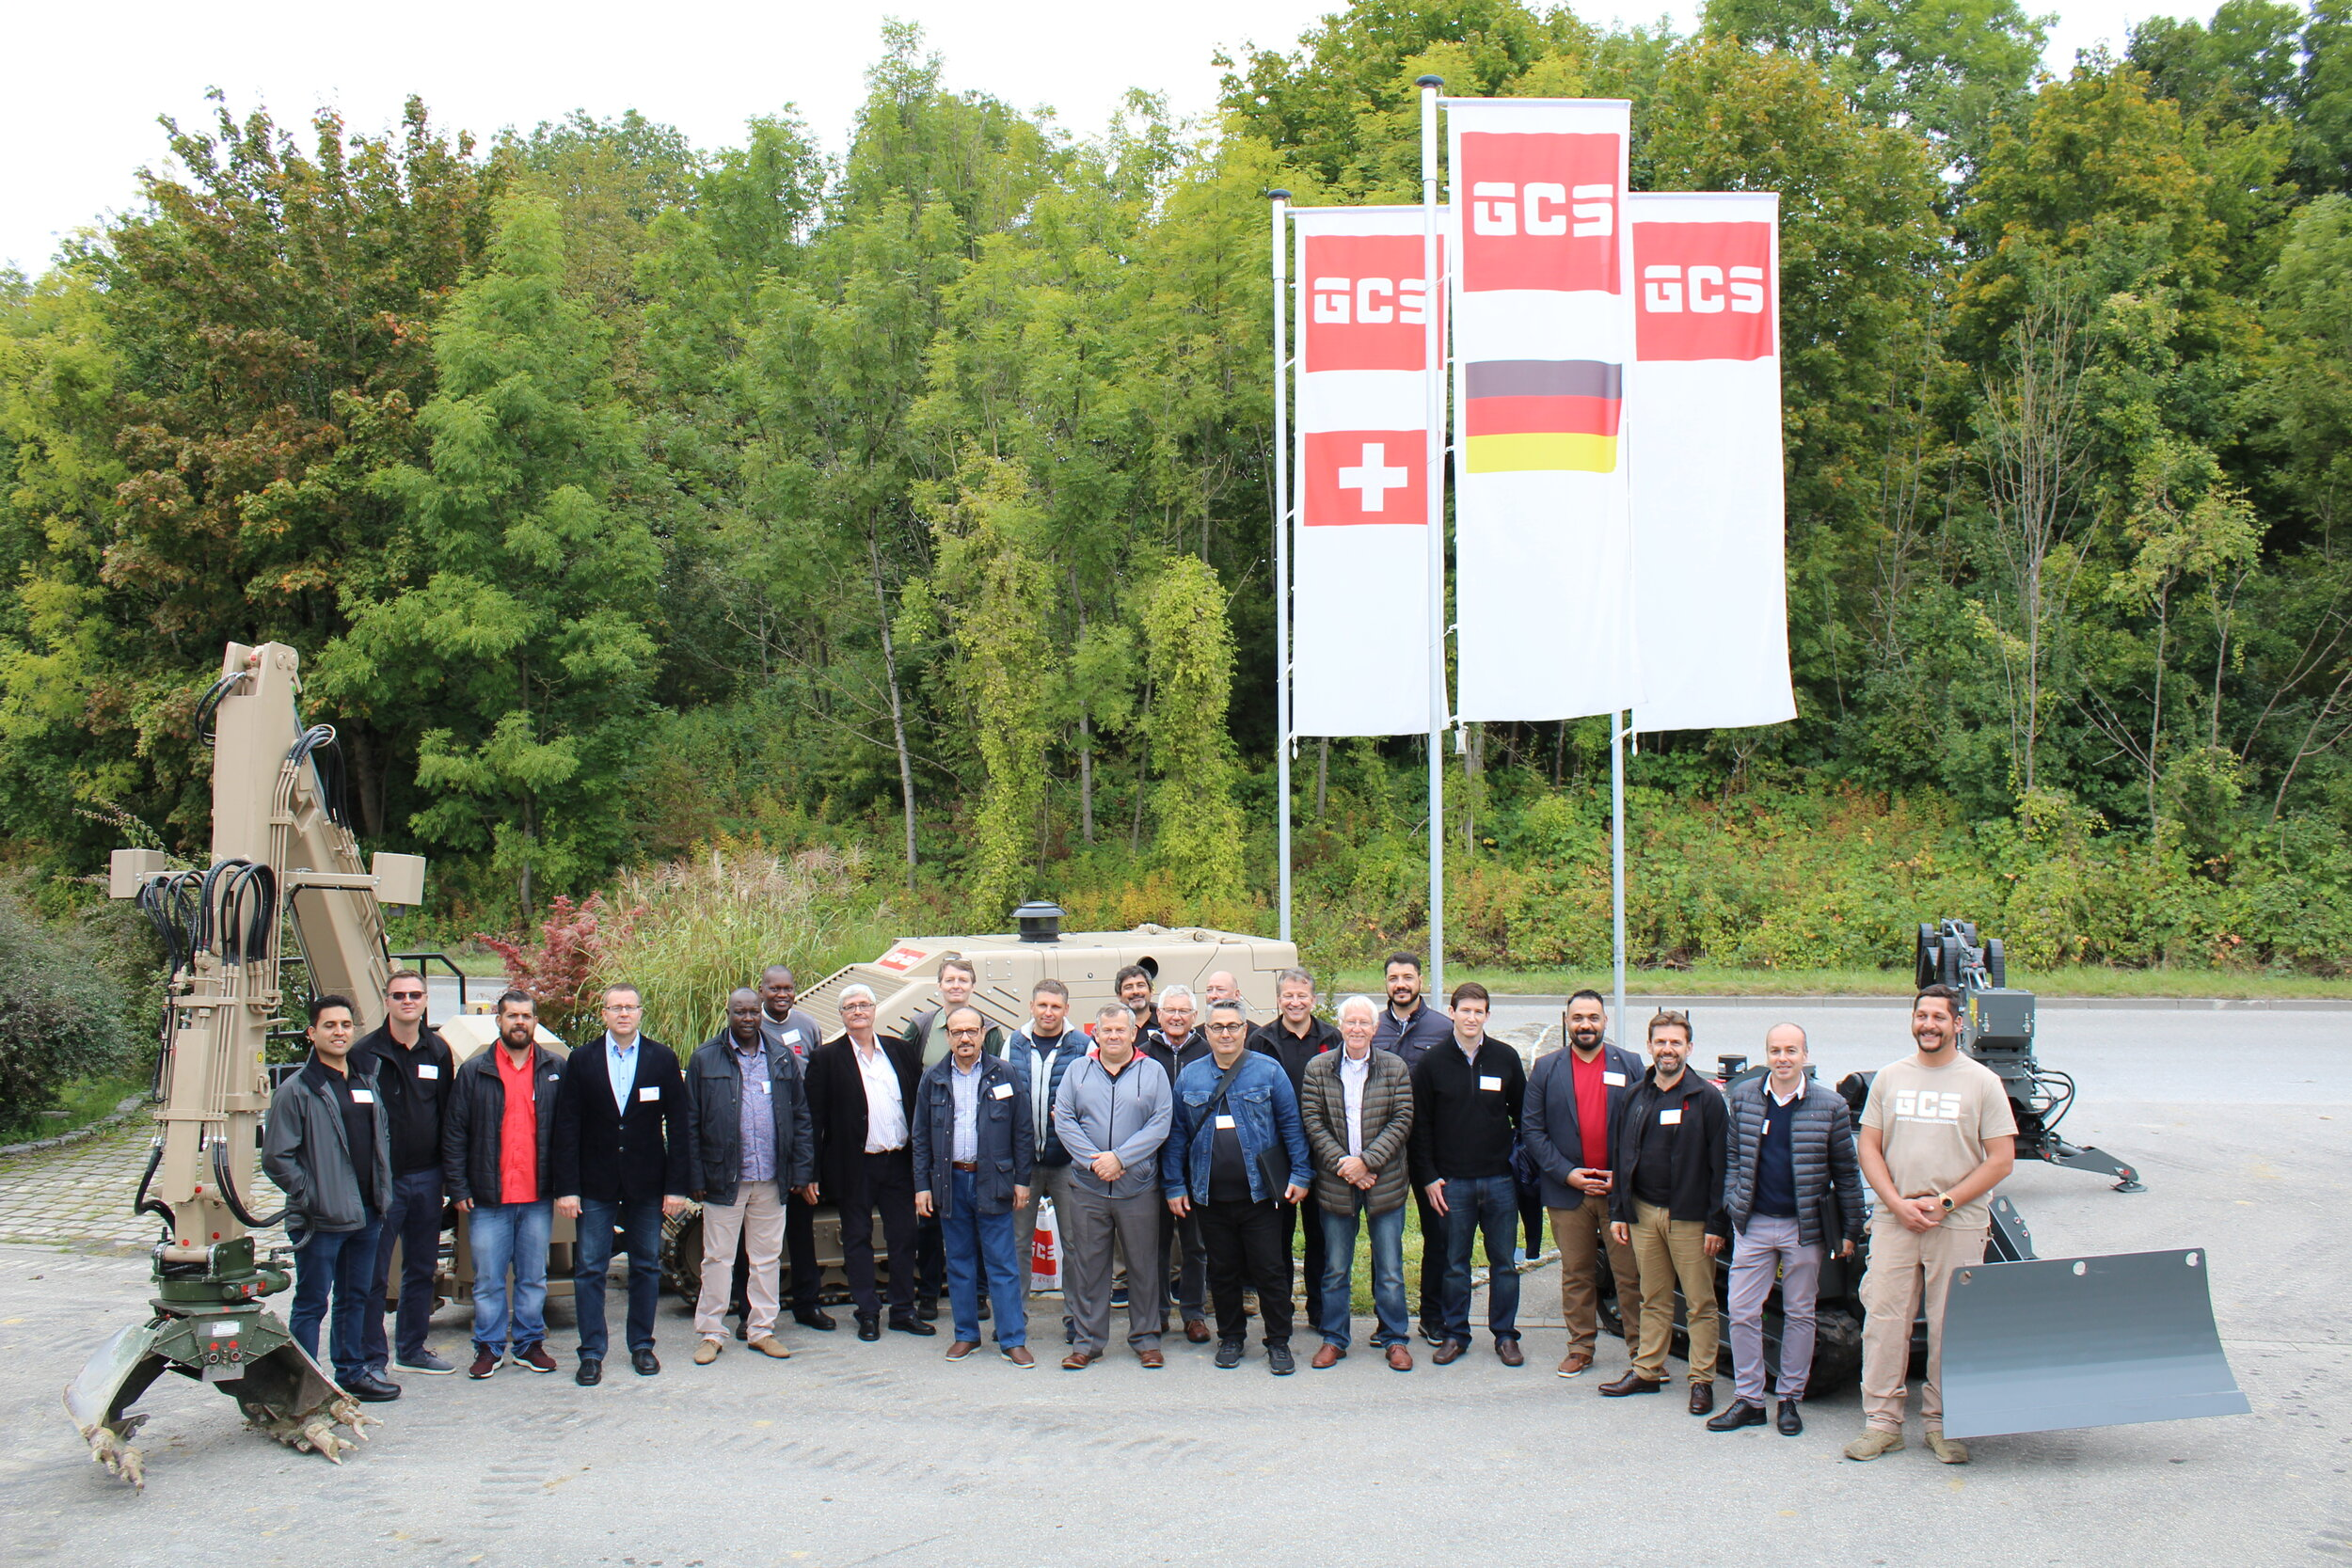 The international gathering pictured in front of the GCS-200 in Stockach